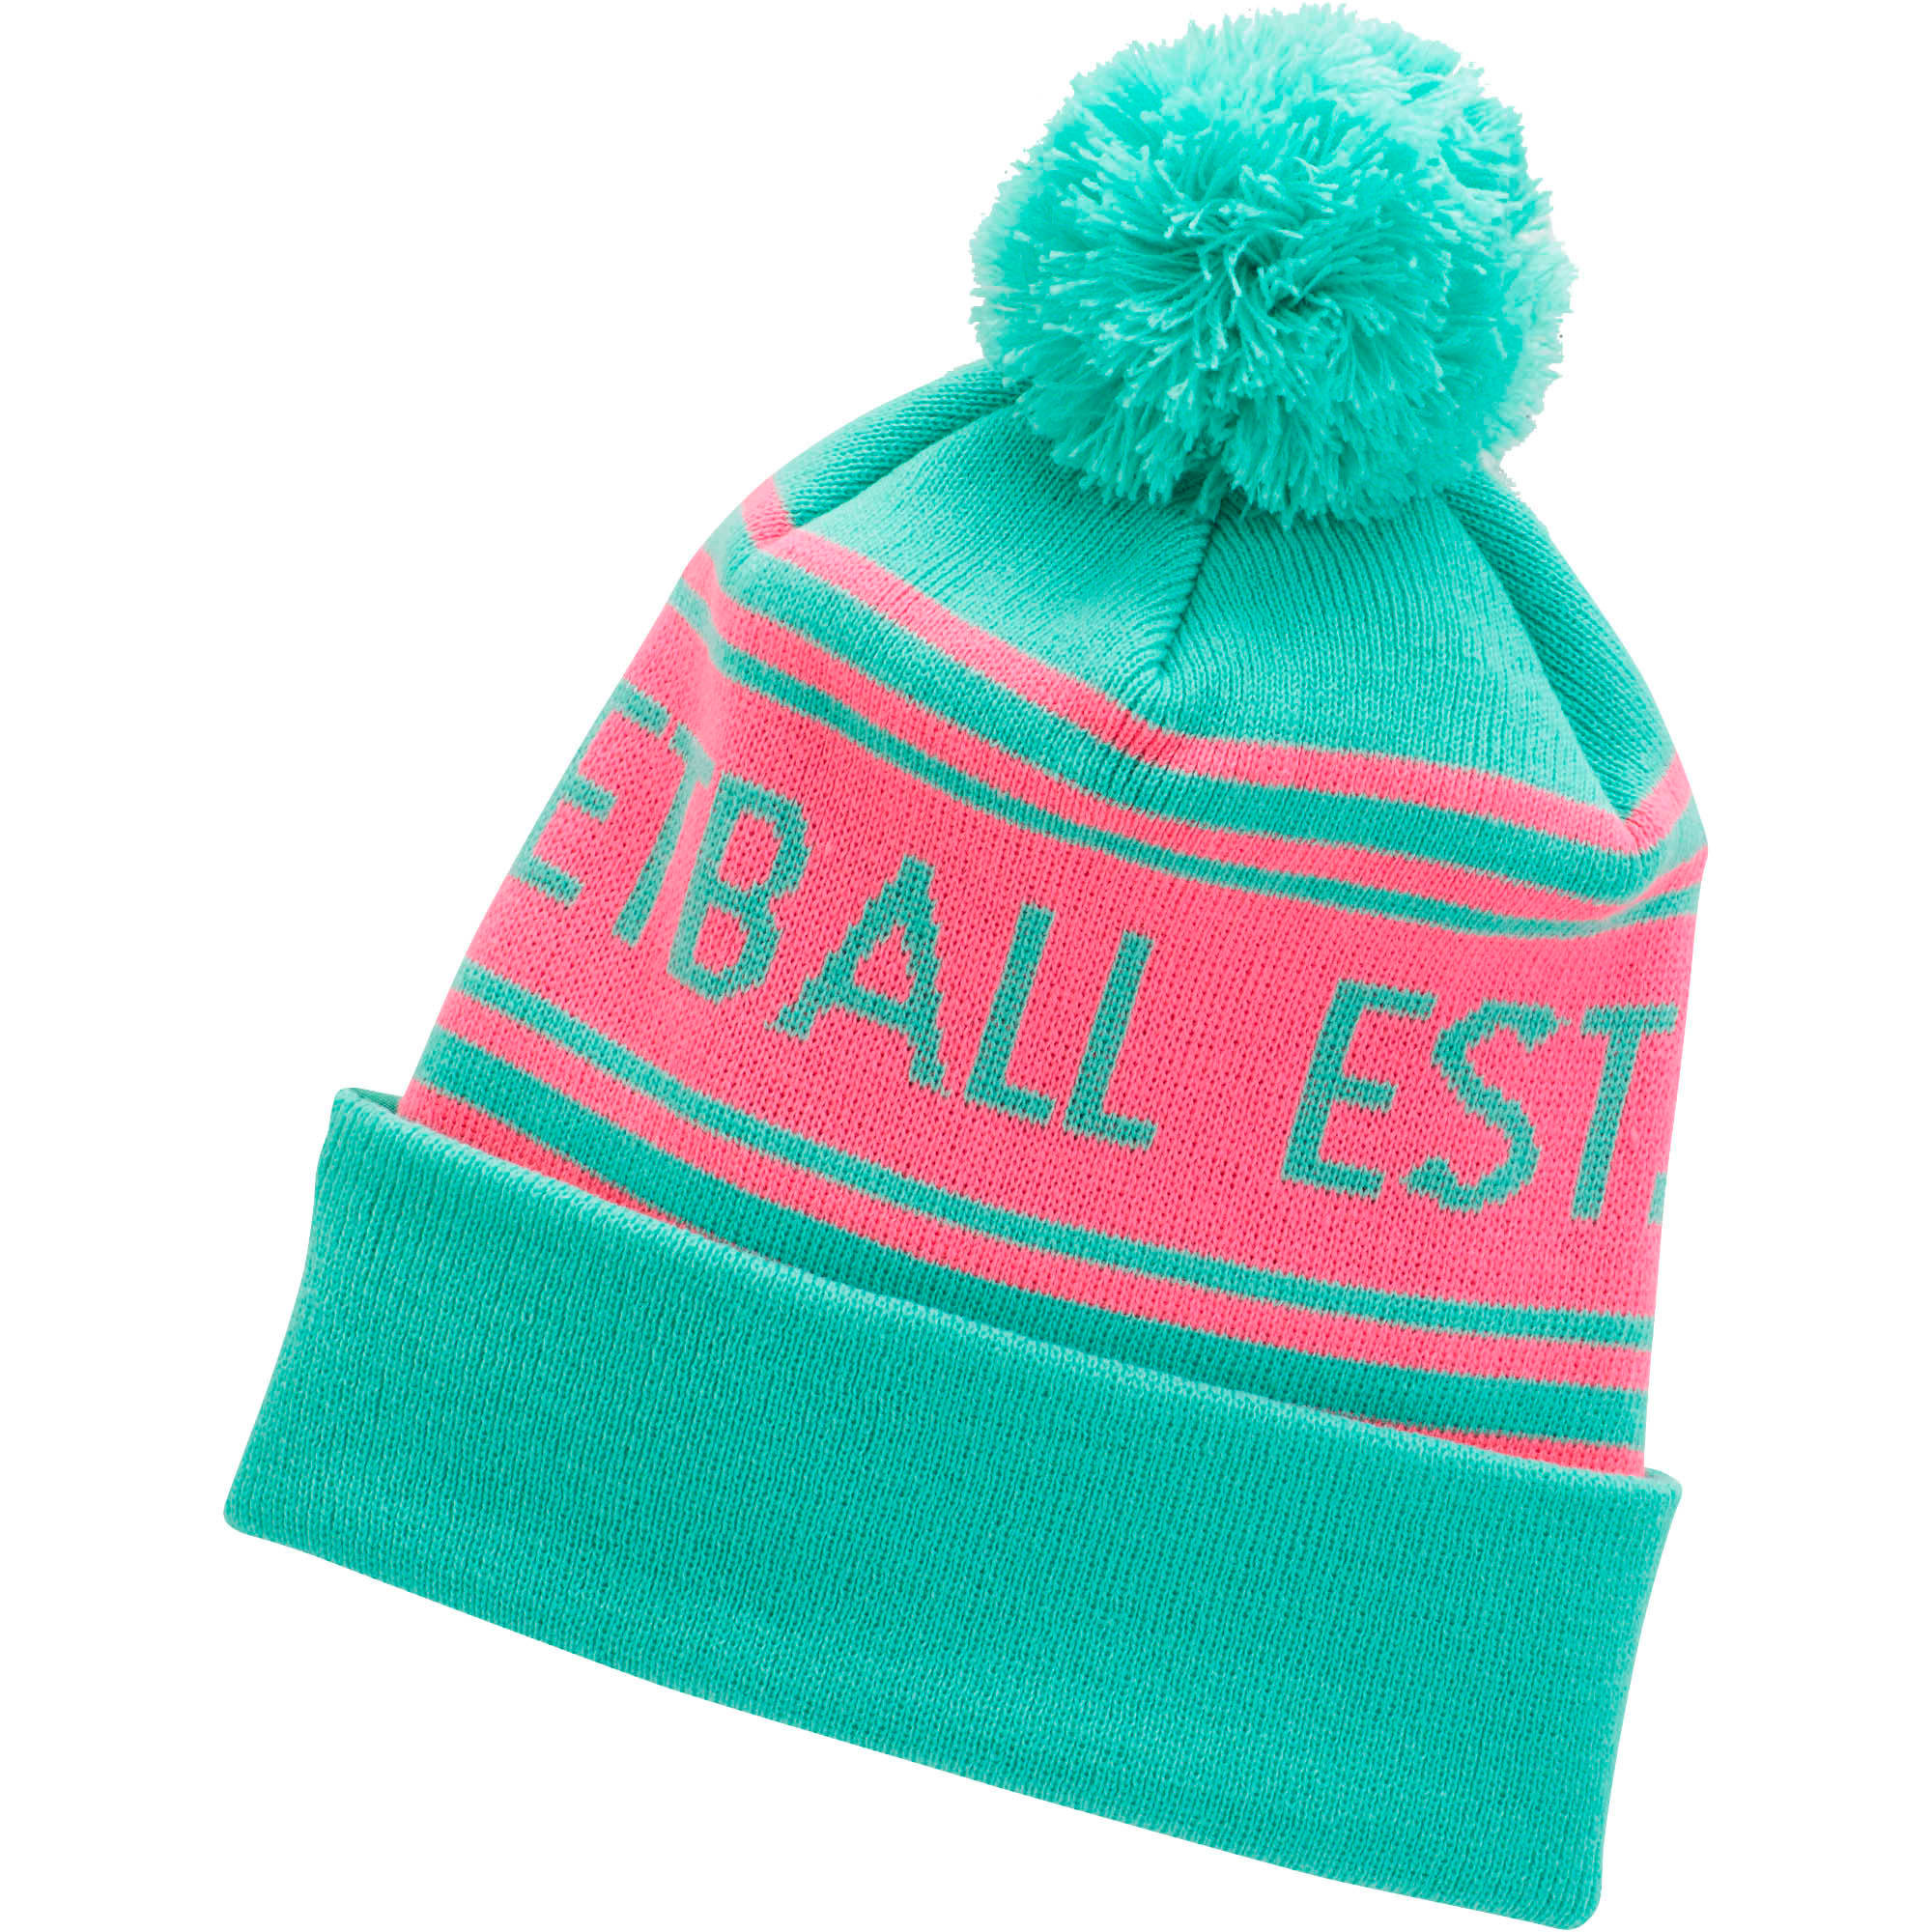 Thumbnail 1 of PUMA Basketball Pom Beanie, BRIGHT GREEN / PINK, medium